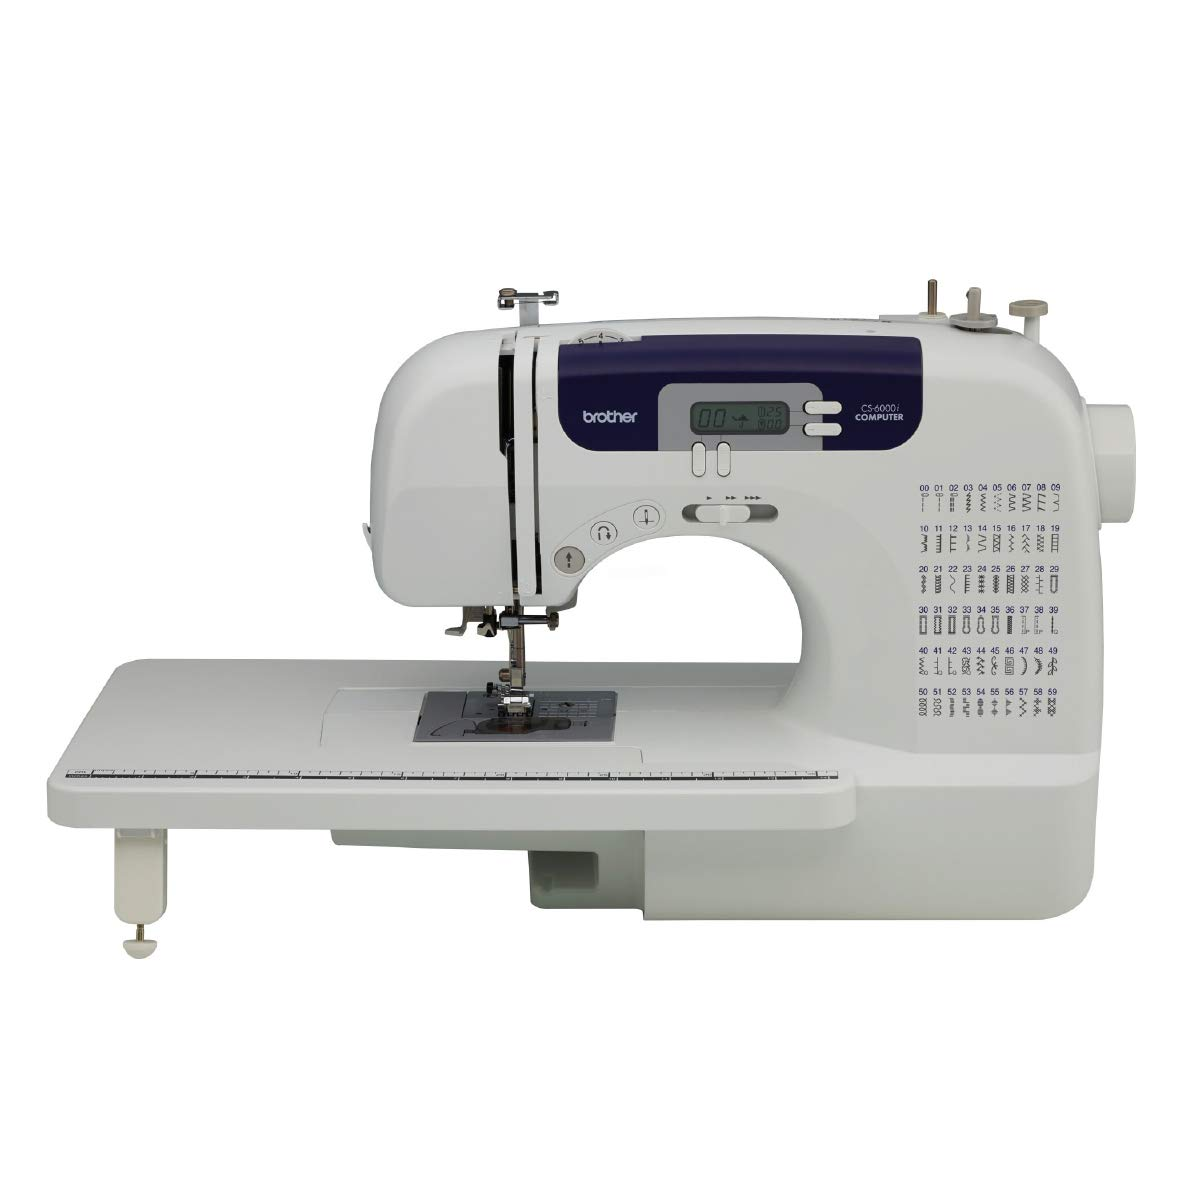 The Best sewing and quilting machine - Our pick